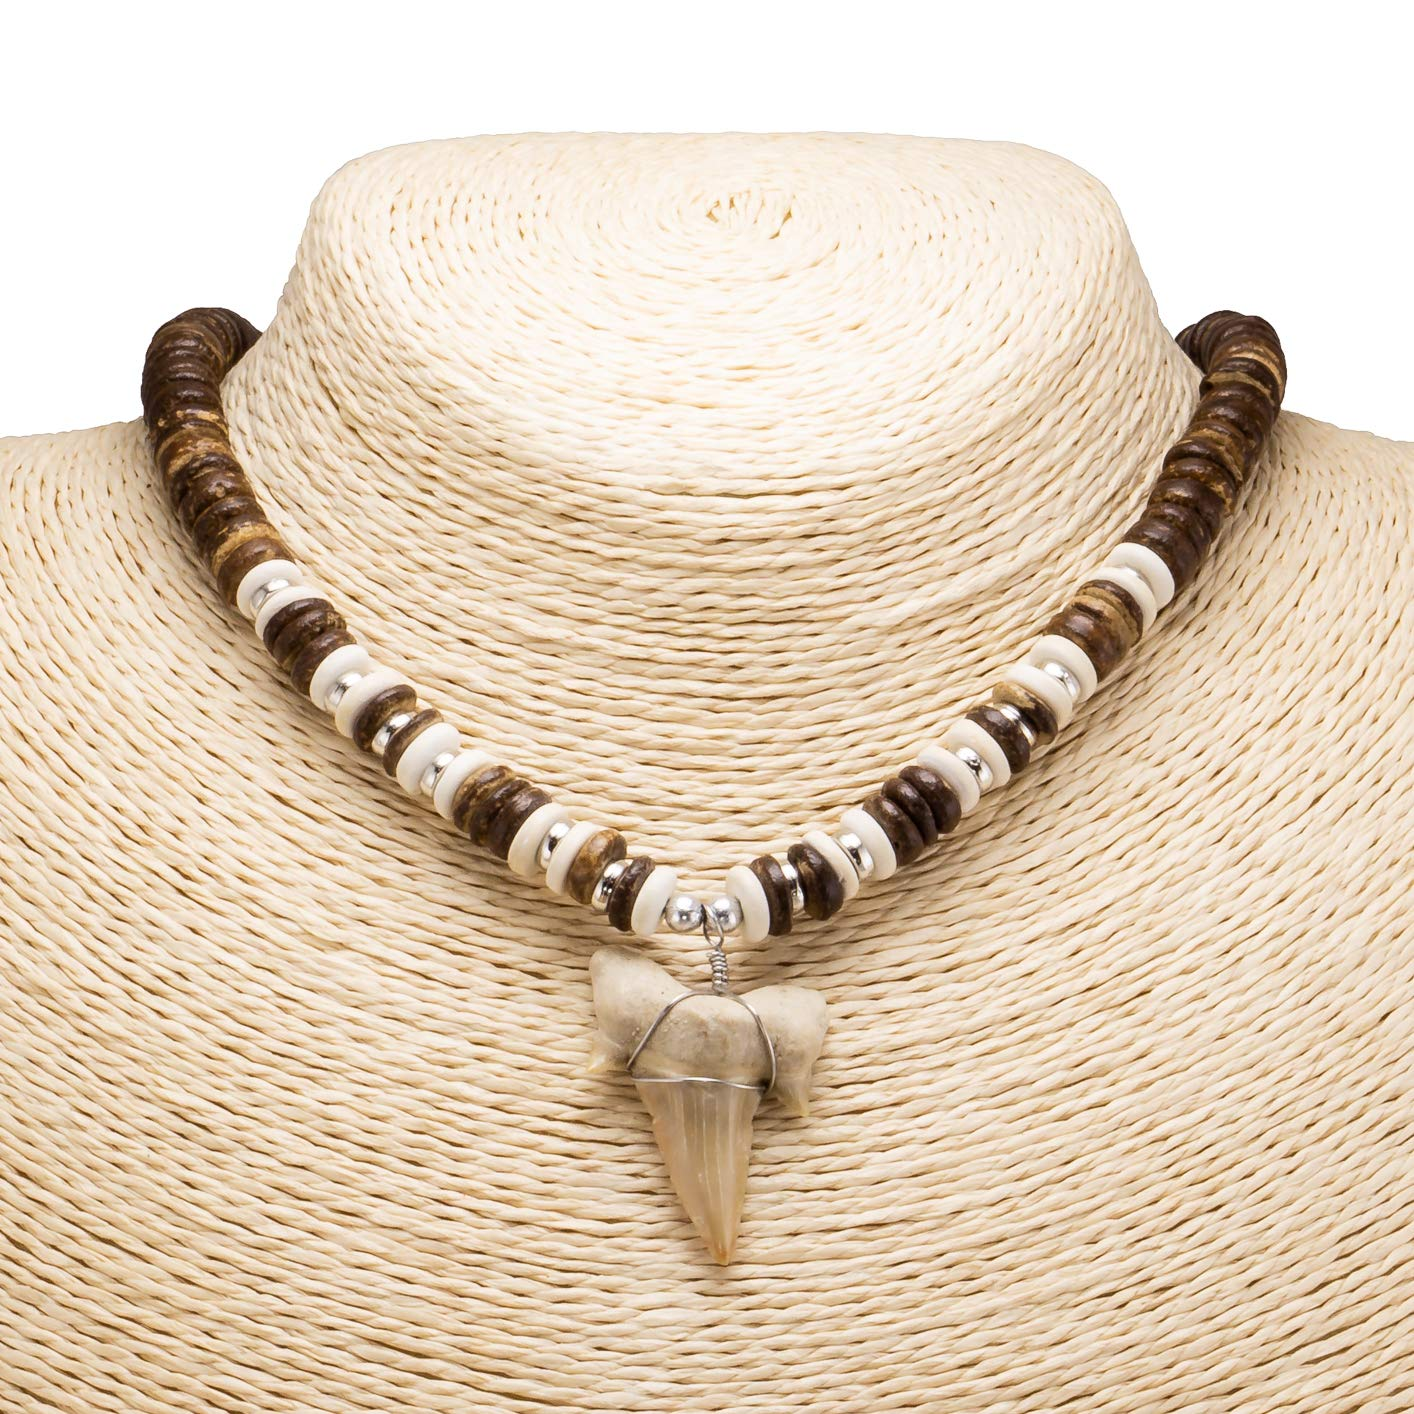 "1¼""+ Shark Tooth Pendant on Brown Coconut Beads Necklace"